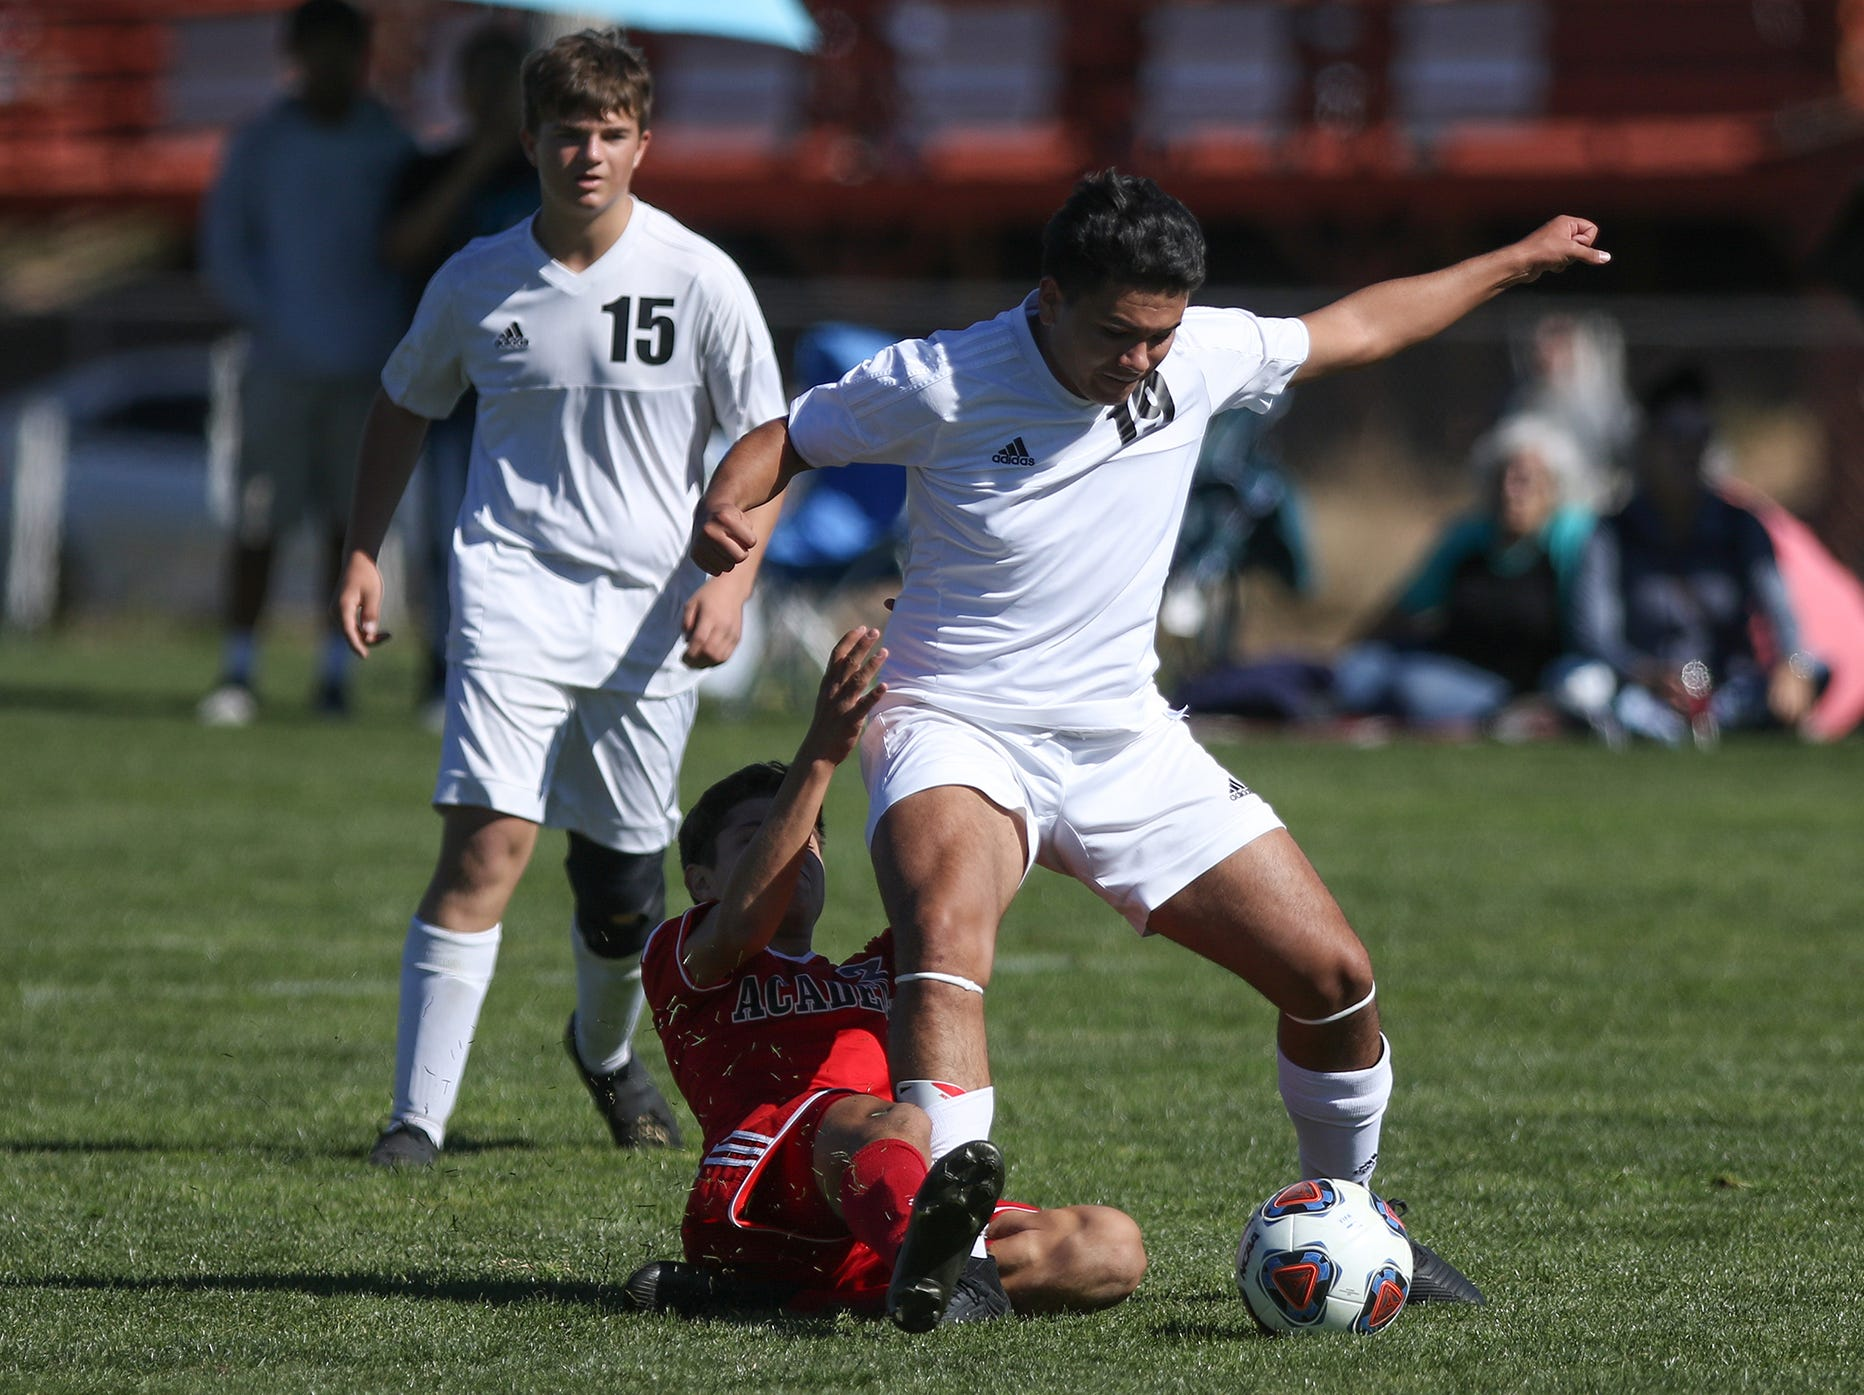 Aztec's Malakai Garcia (19) battles Albuquerque Academy's Case Manifold for possession of the ball during Wednesday's 4A state quarterfinals in Bernalillo.